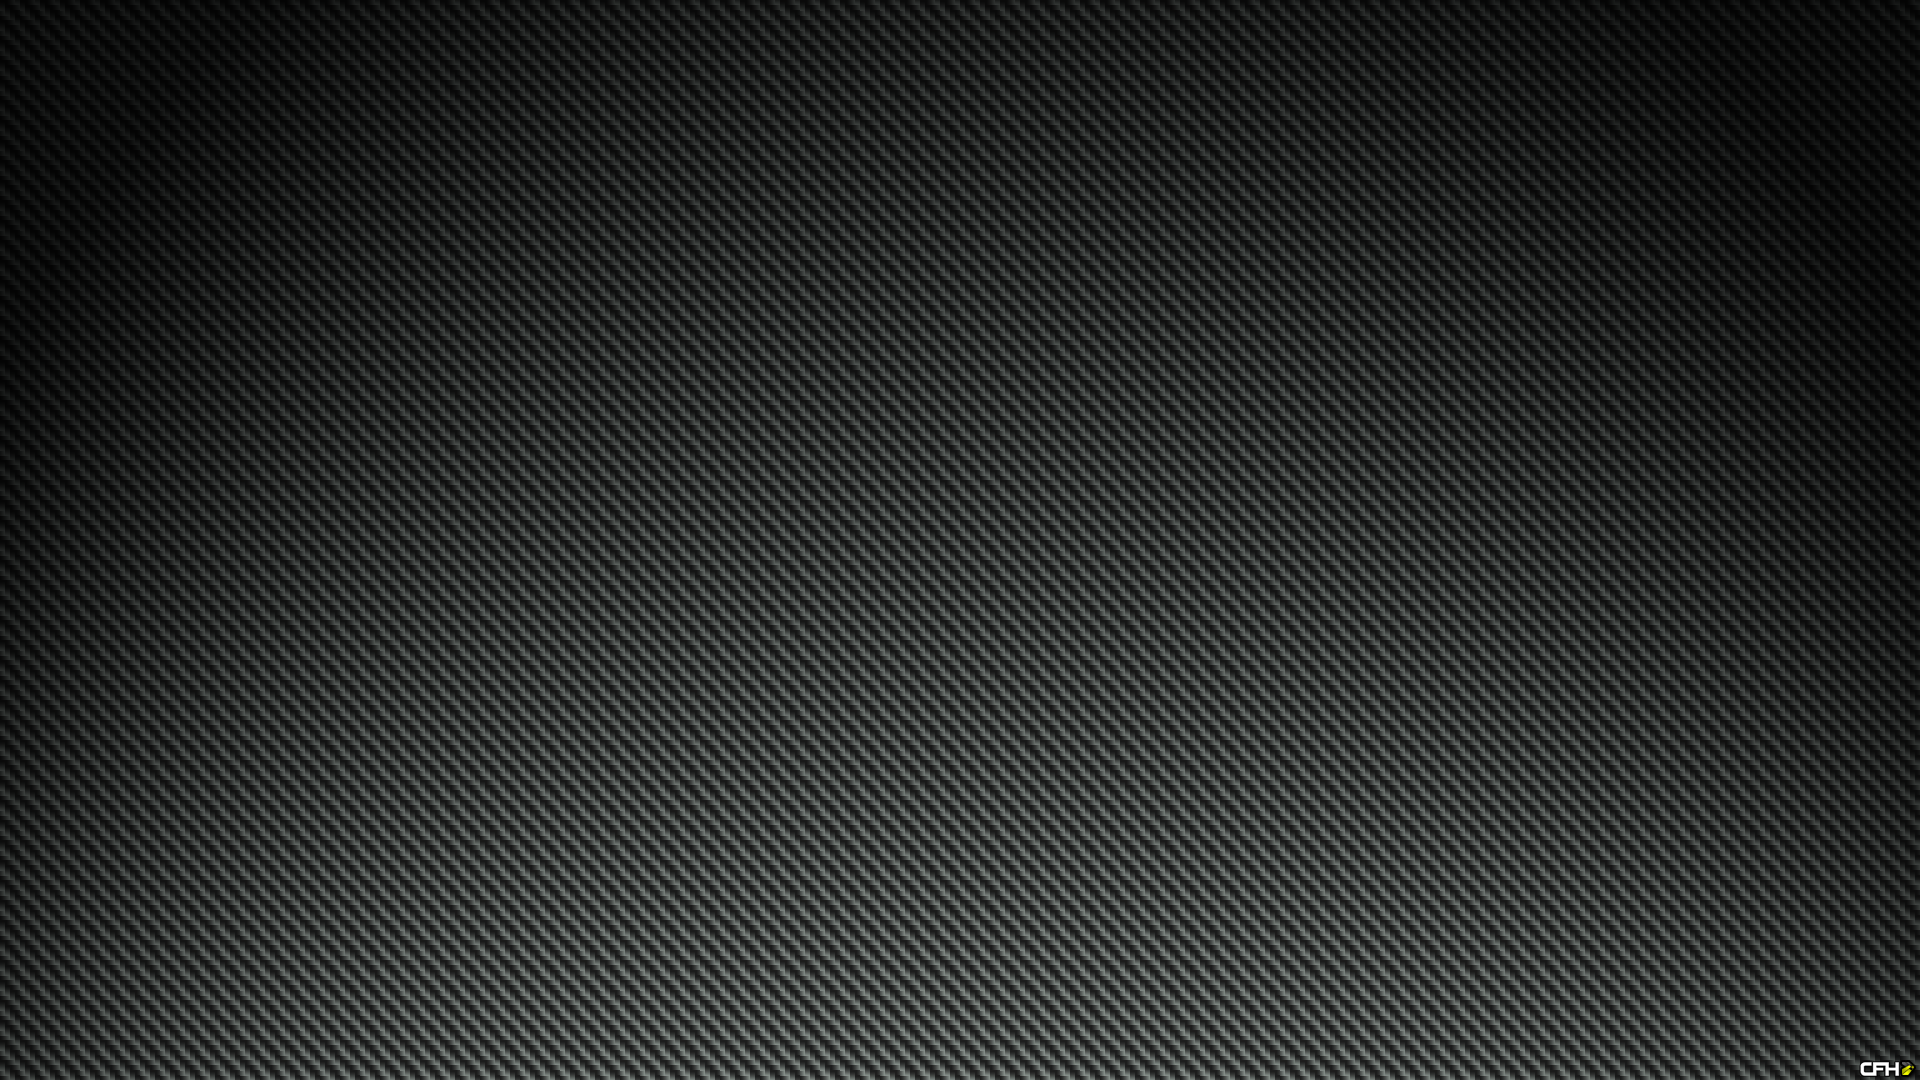 Carbon Fibre Wallpapers 1920x1080